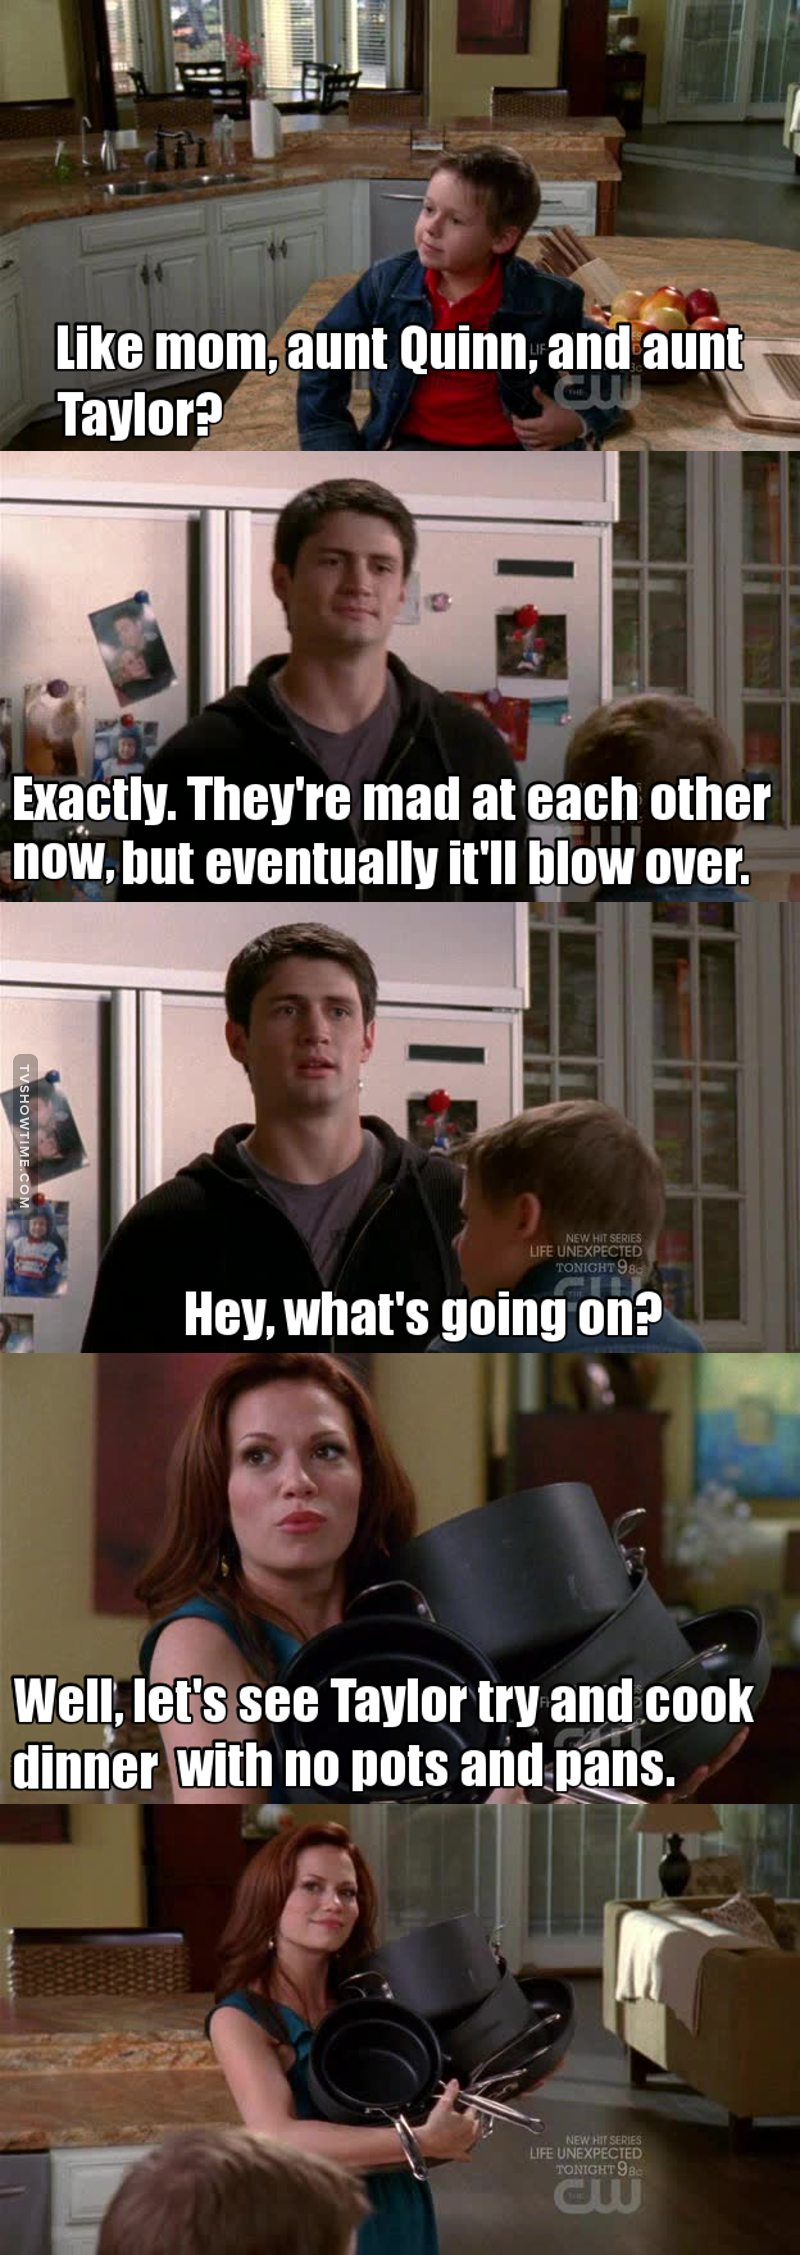 So funny! Haley was amazing in this episode! I had a blast!!!